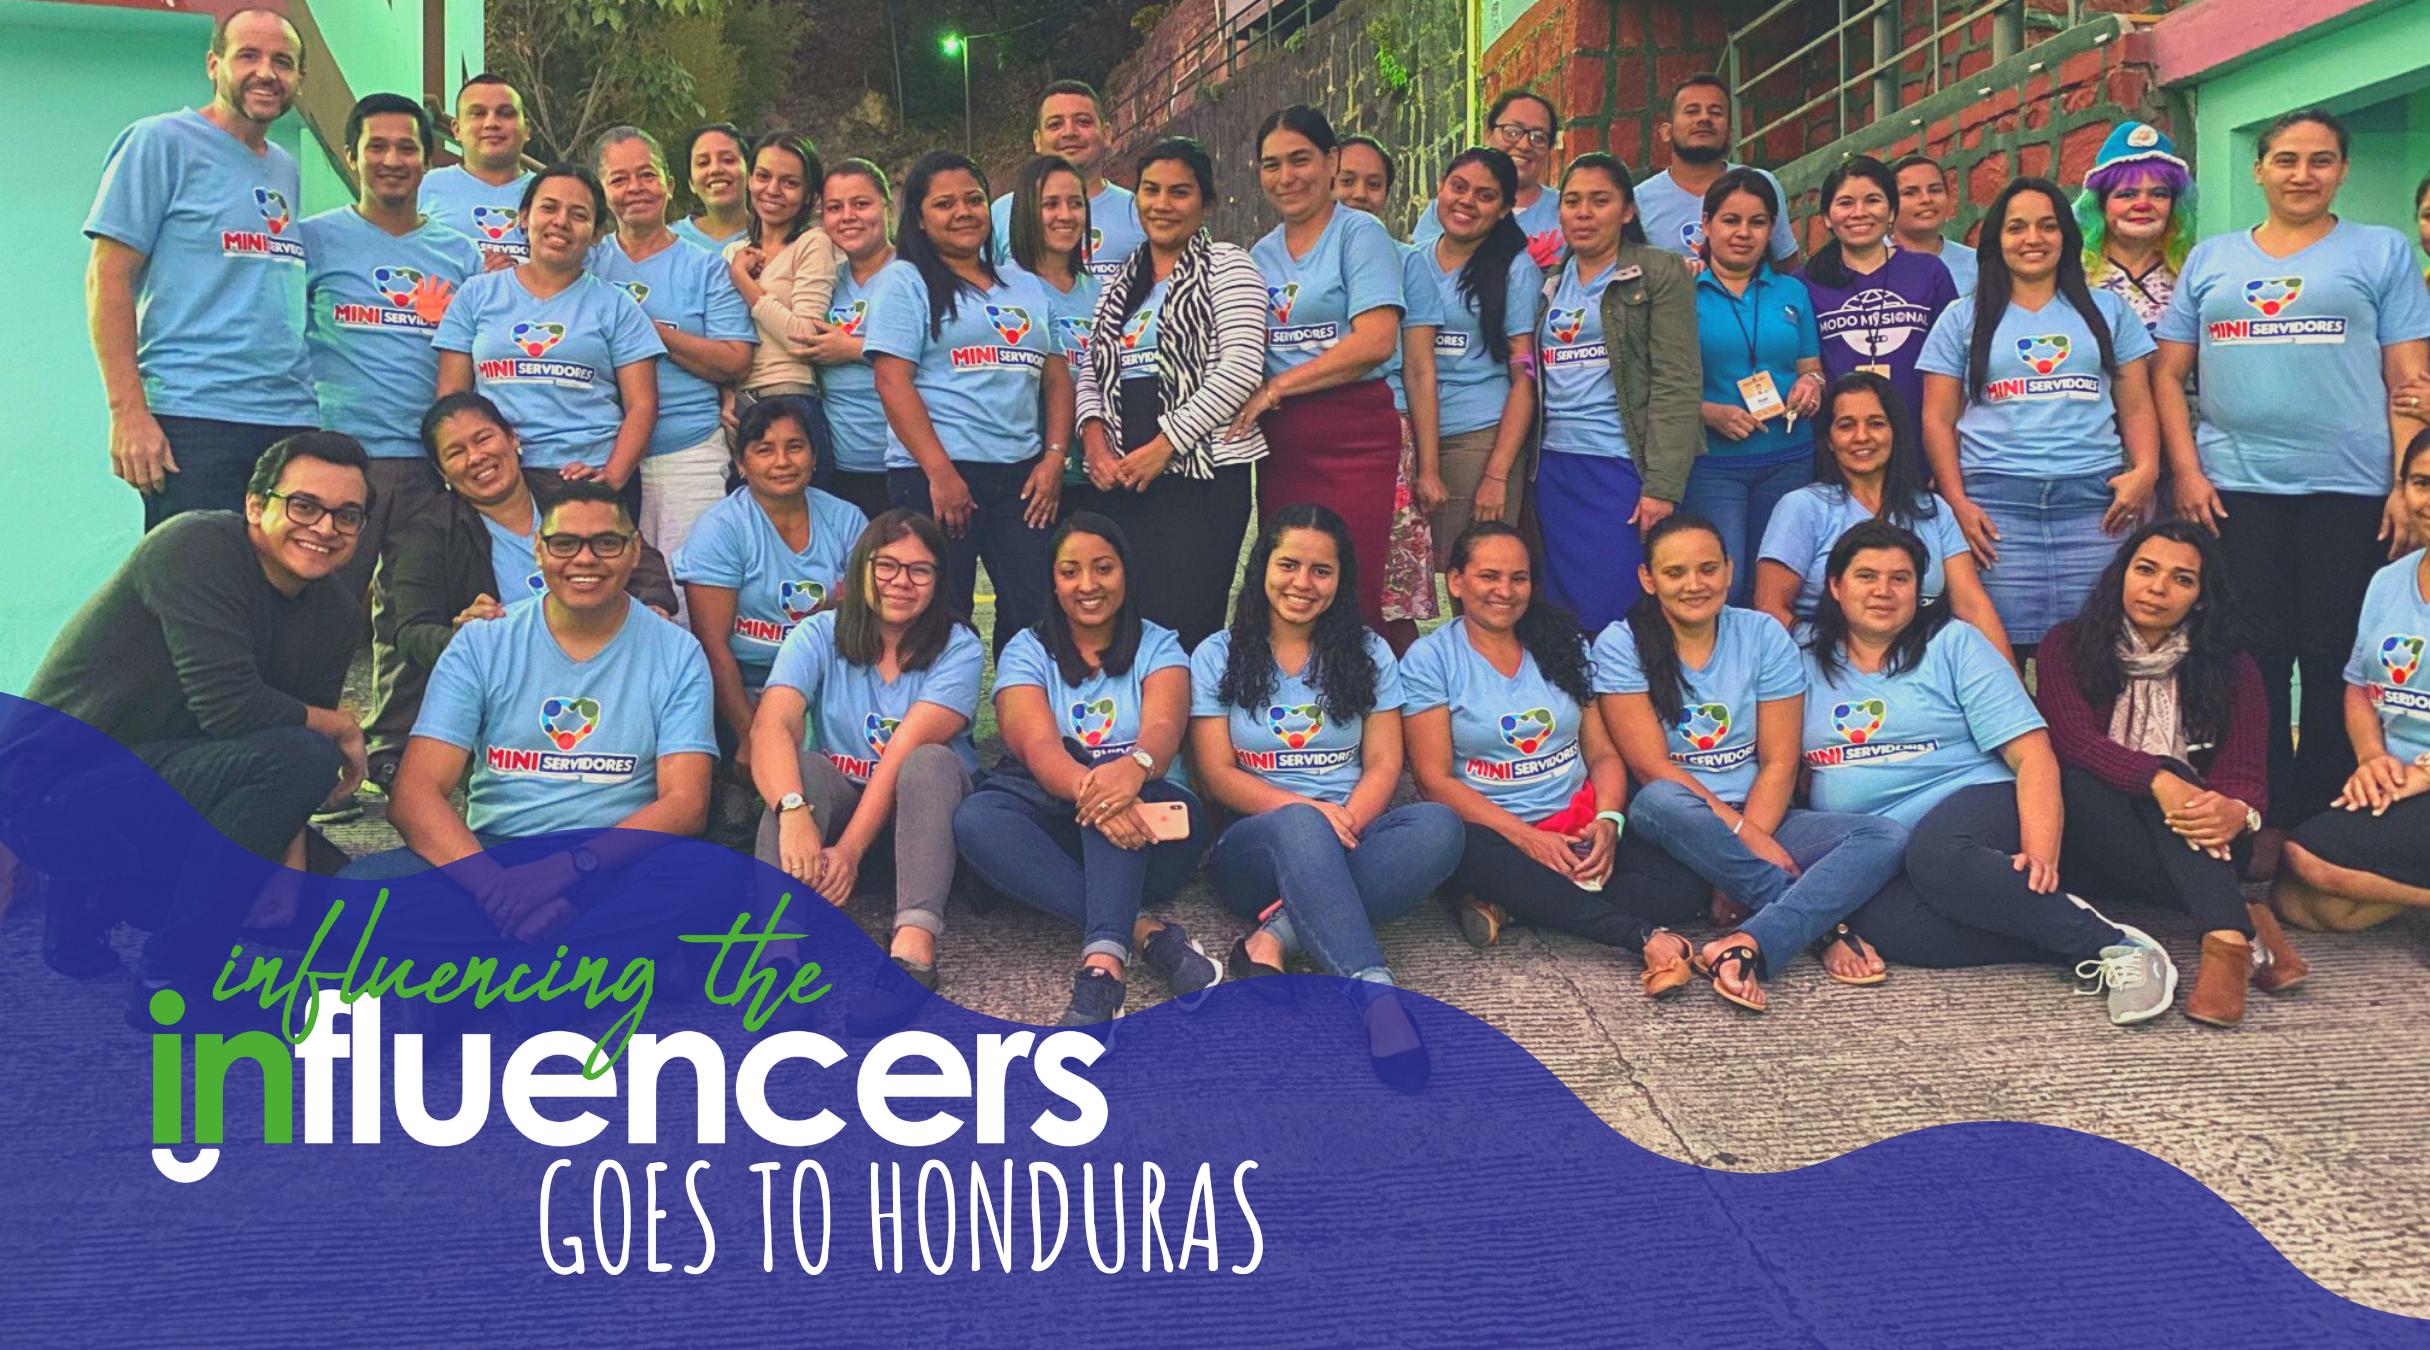 Influencing the Influencers Goes to Honduras